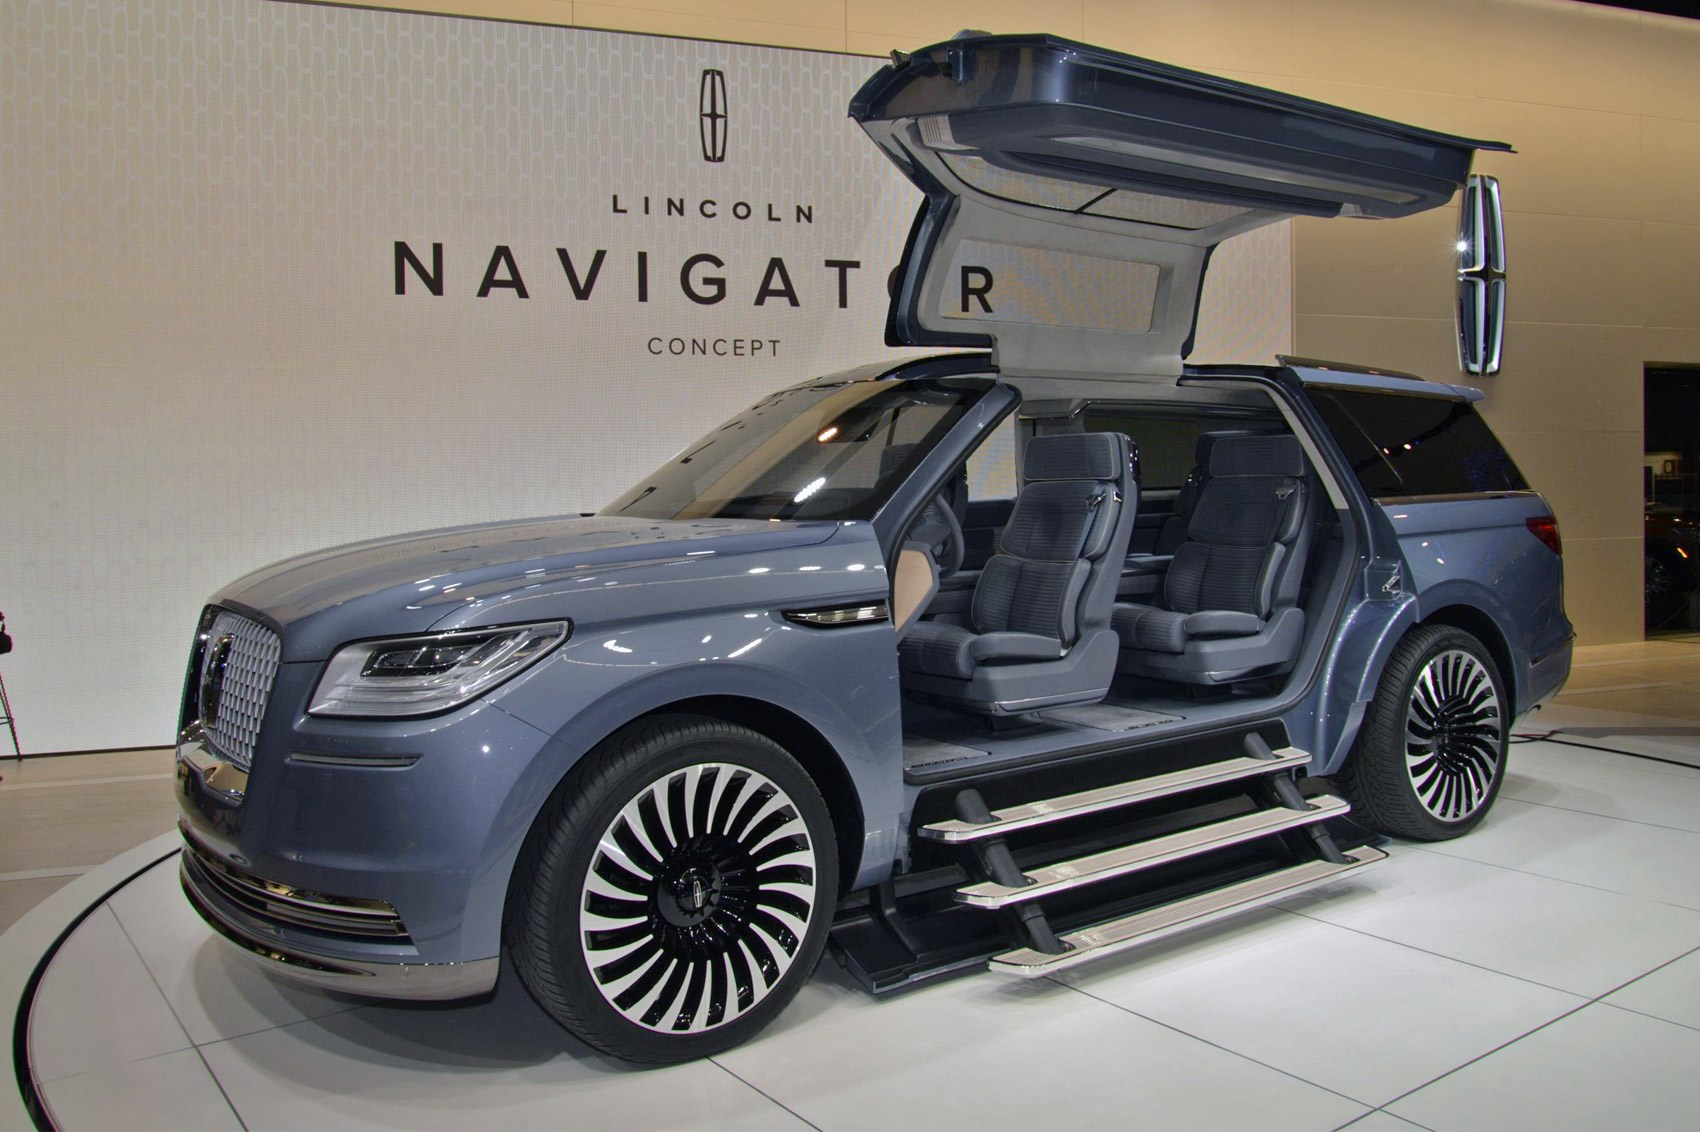 Lincoln blows the doors off with new Navigator Concept ...